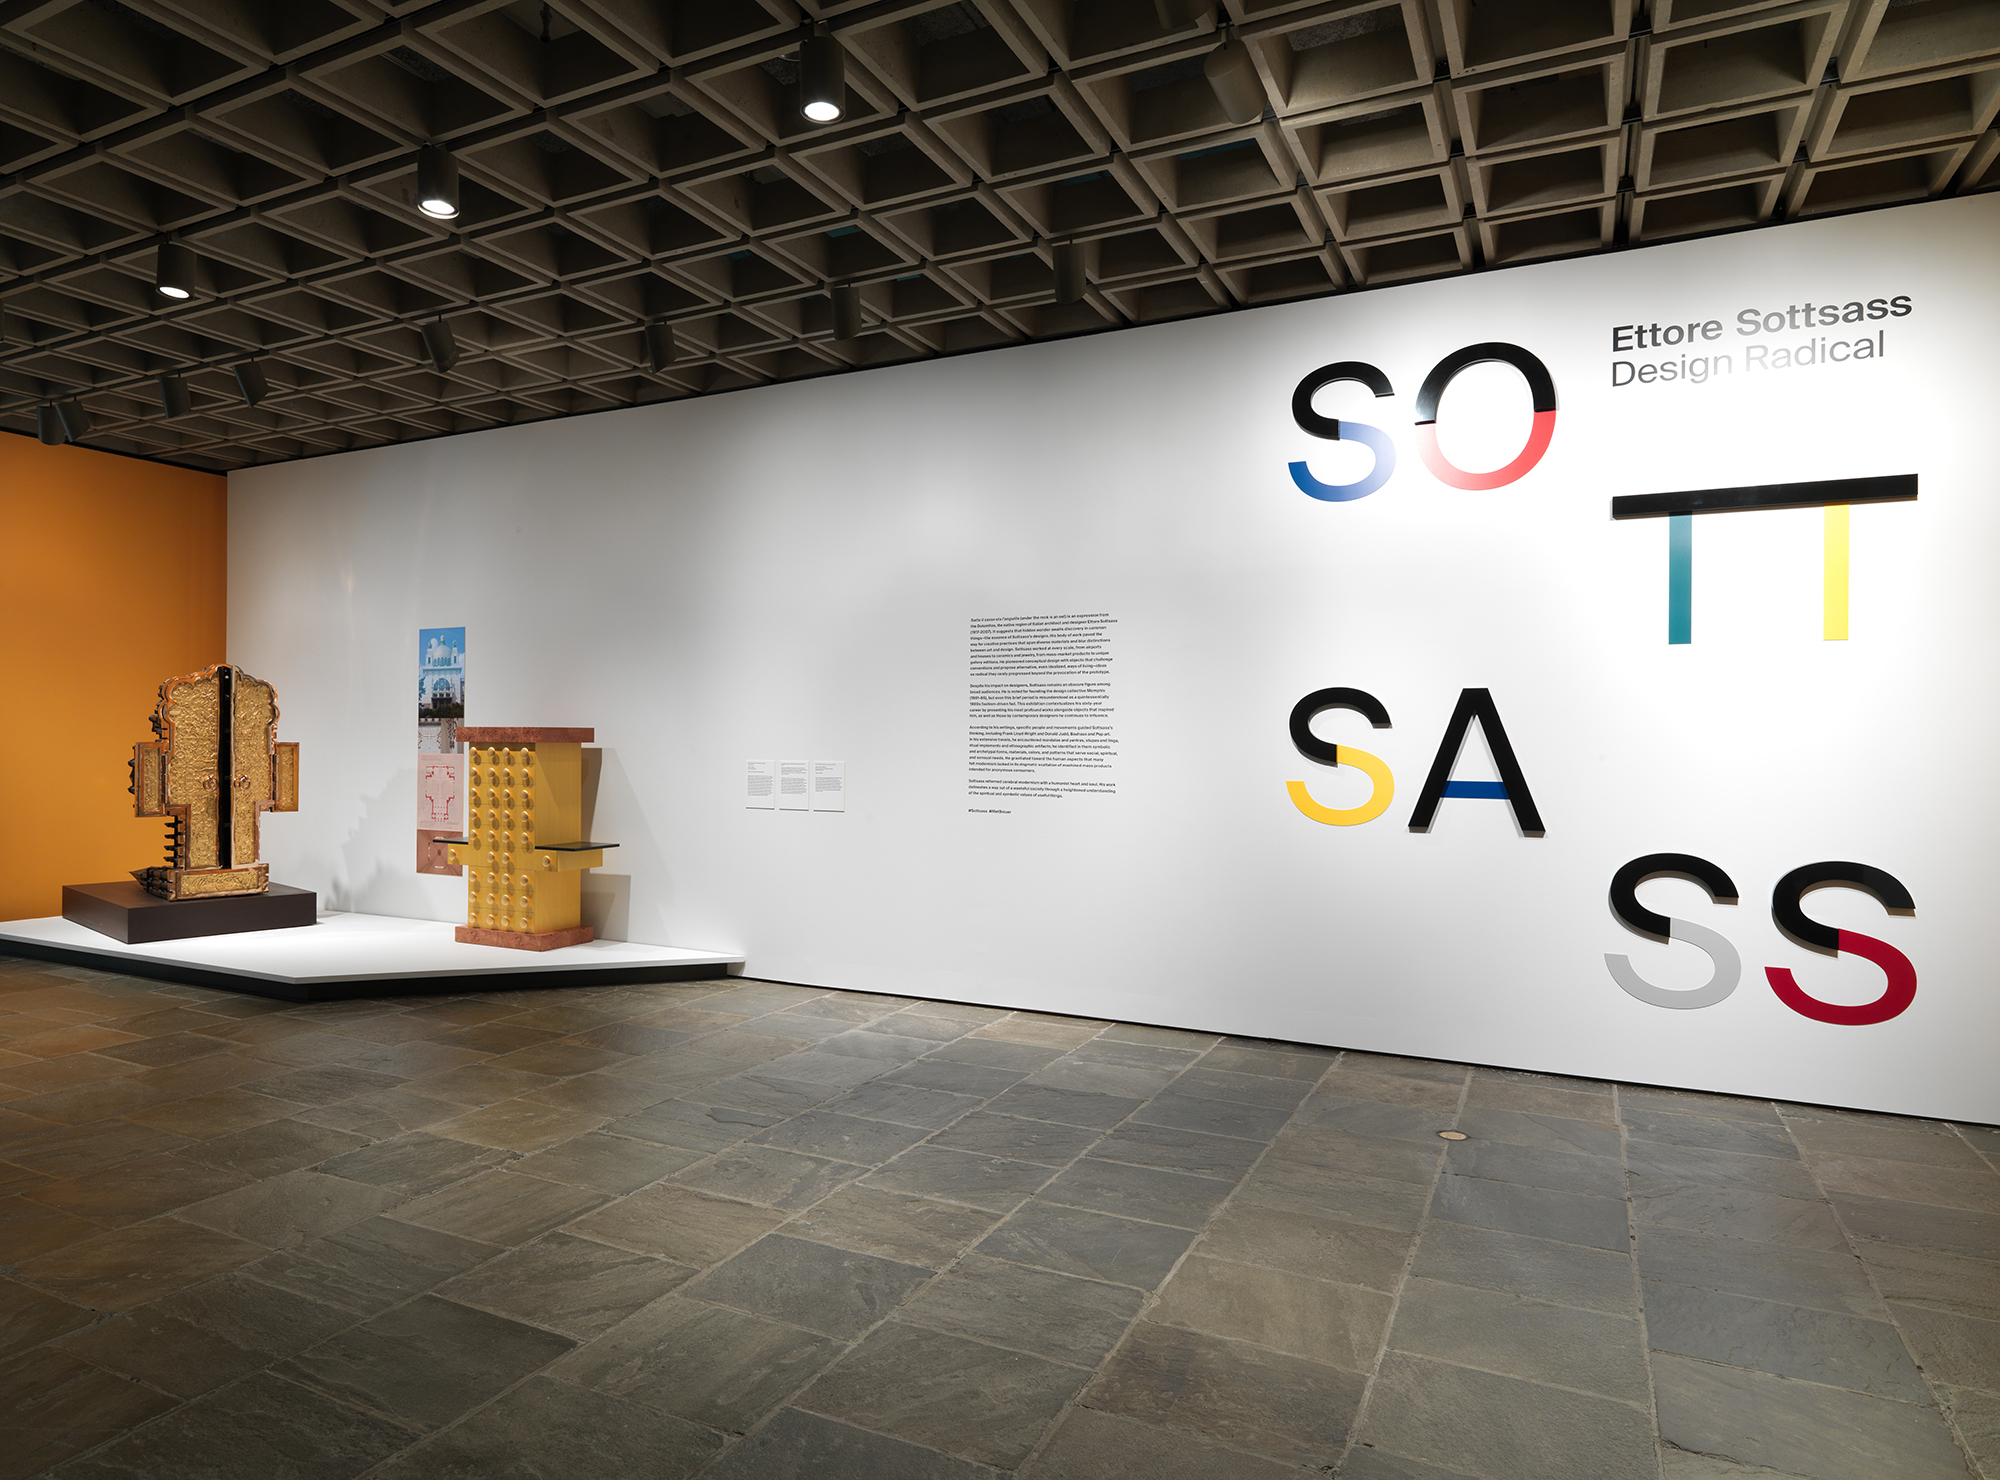 Studio Job Chartres Sottsass Courtesy The Metropolitan Museum of Art 2